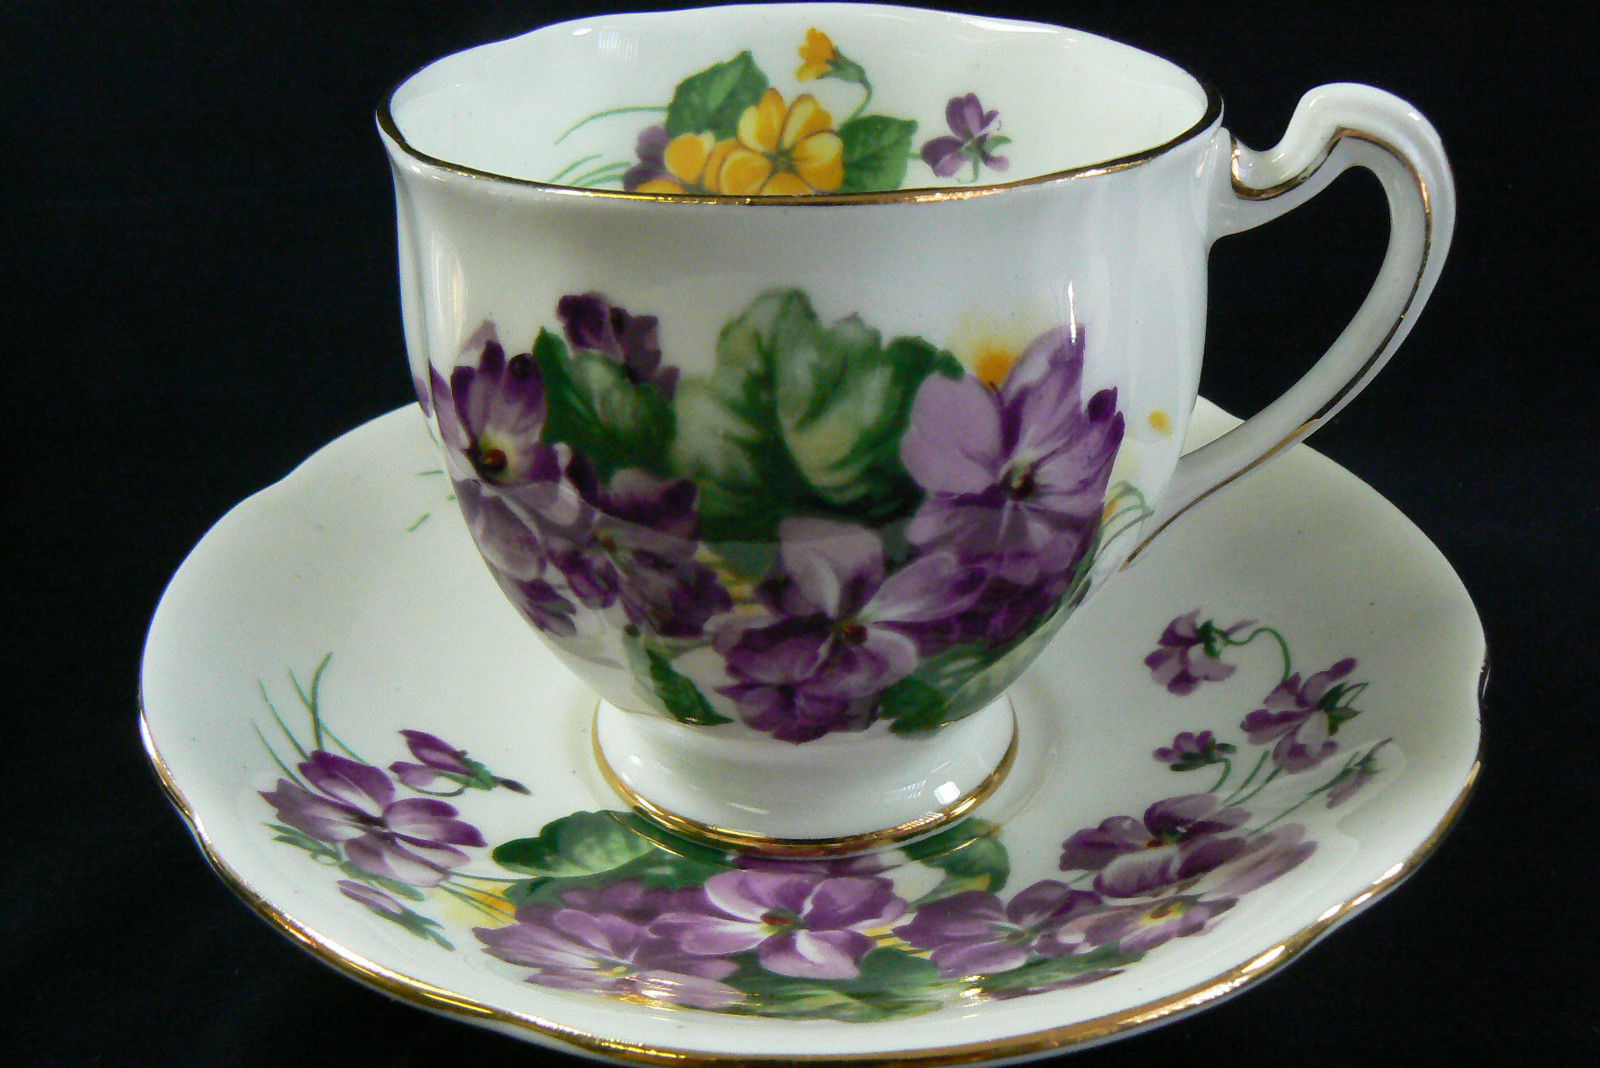 royal standard tea cup saucer lavender lady pattern fine bone china england royal standard. Black Bedroom Furniture Sets. Home Design Ideas